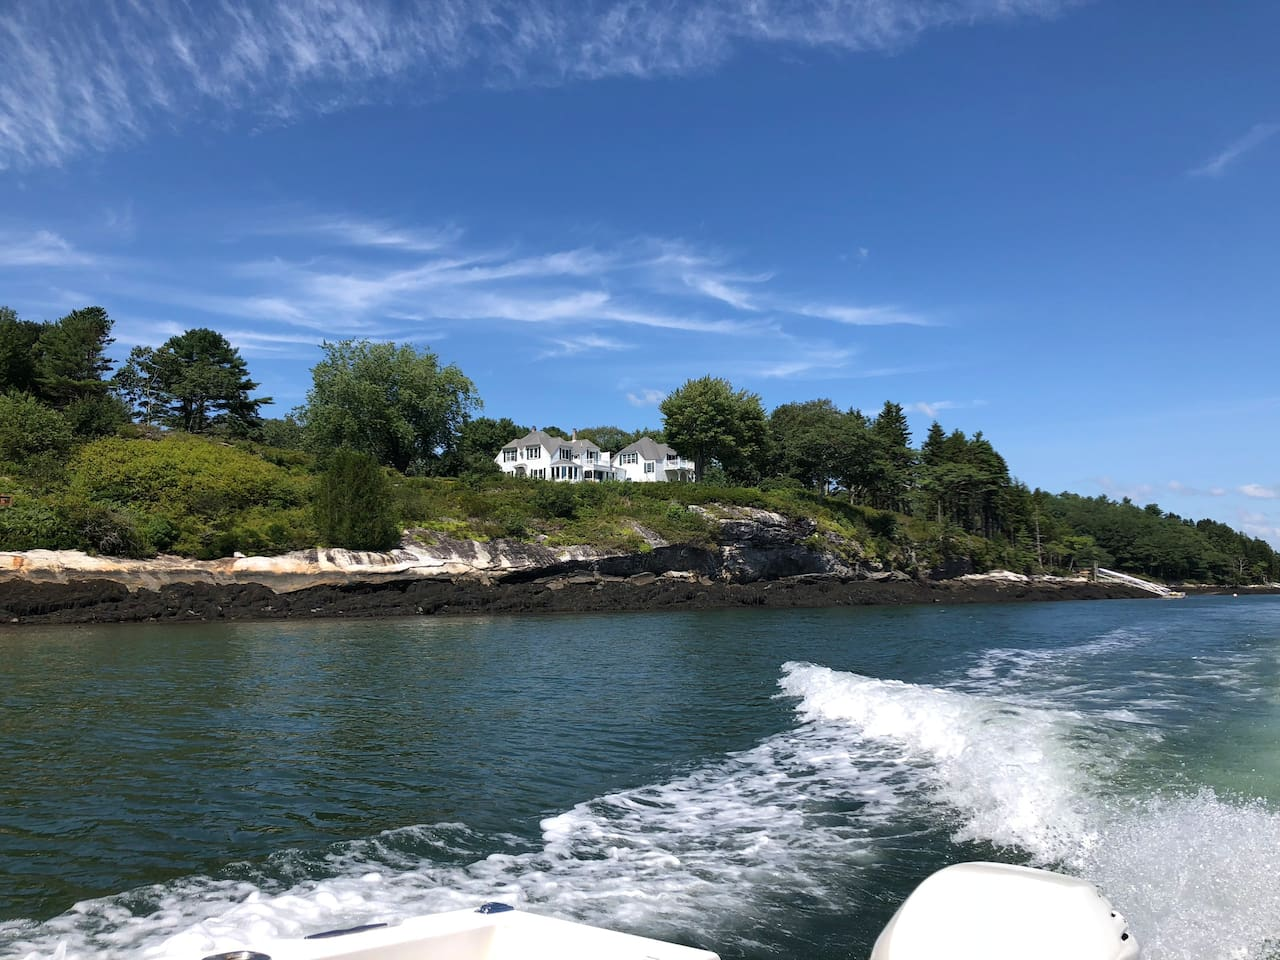 The Cottage sits on 3.5 acres of privacy,...with its own peninsula overlooking a small and active cove.  A shoreline path takes you in front of the cottage to a dock with a seating area onshore and a Mooring in the cove for your boat.